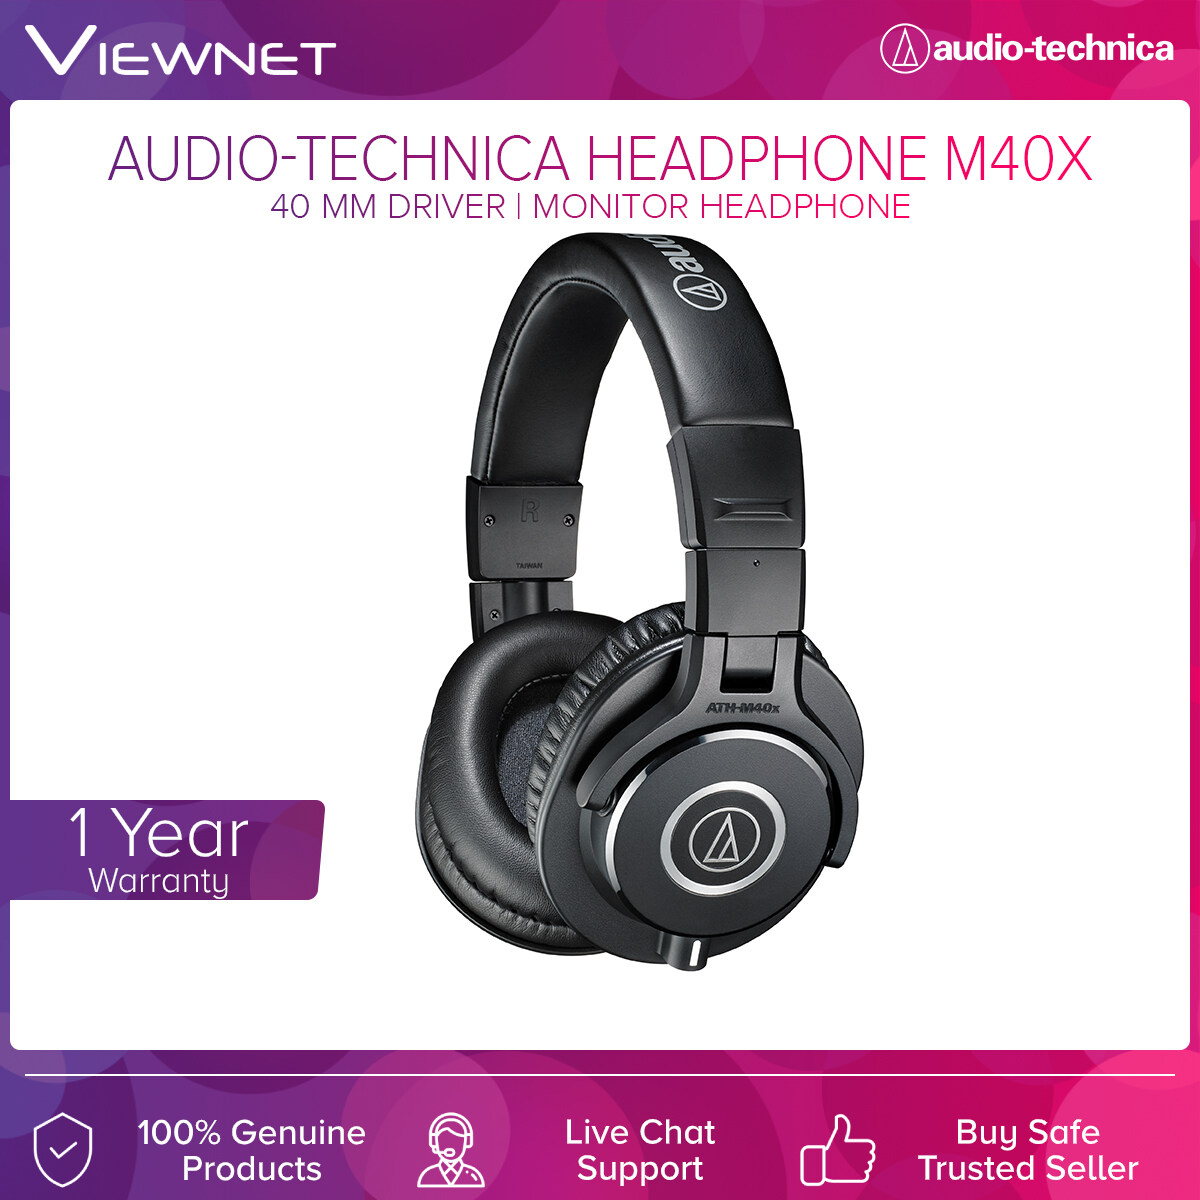 Audio-Technica Professional Monitor Headphones ATH-M40X with 40mm Driver, Copper-Clad Aluminum Wire, 3 Meter Length Cable, 15 - 24,000 Hz